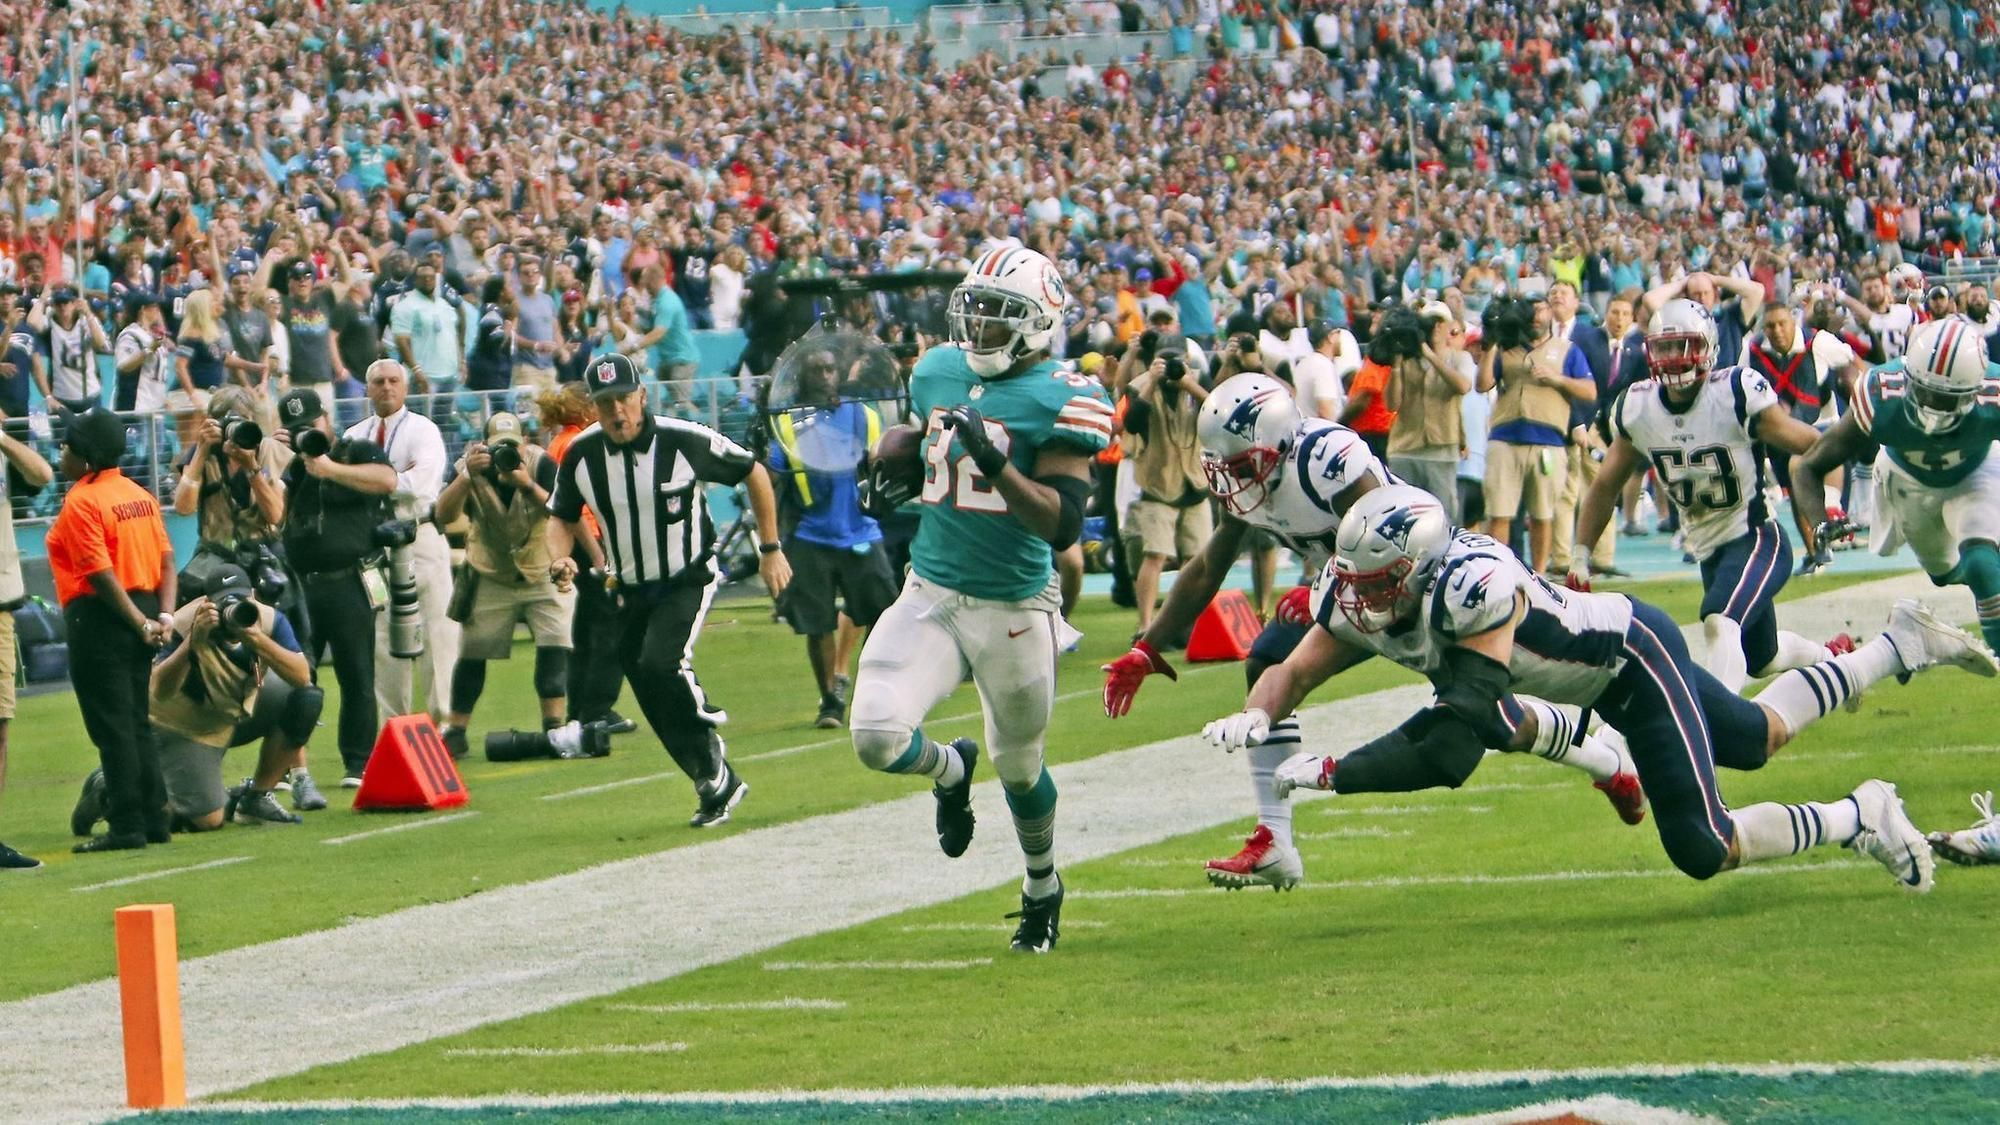 Football scored by Dolphins in Miami Miracle sells for